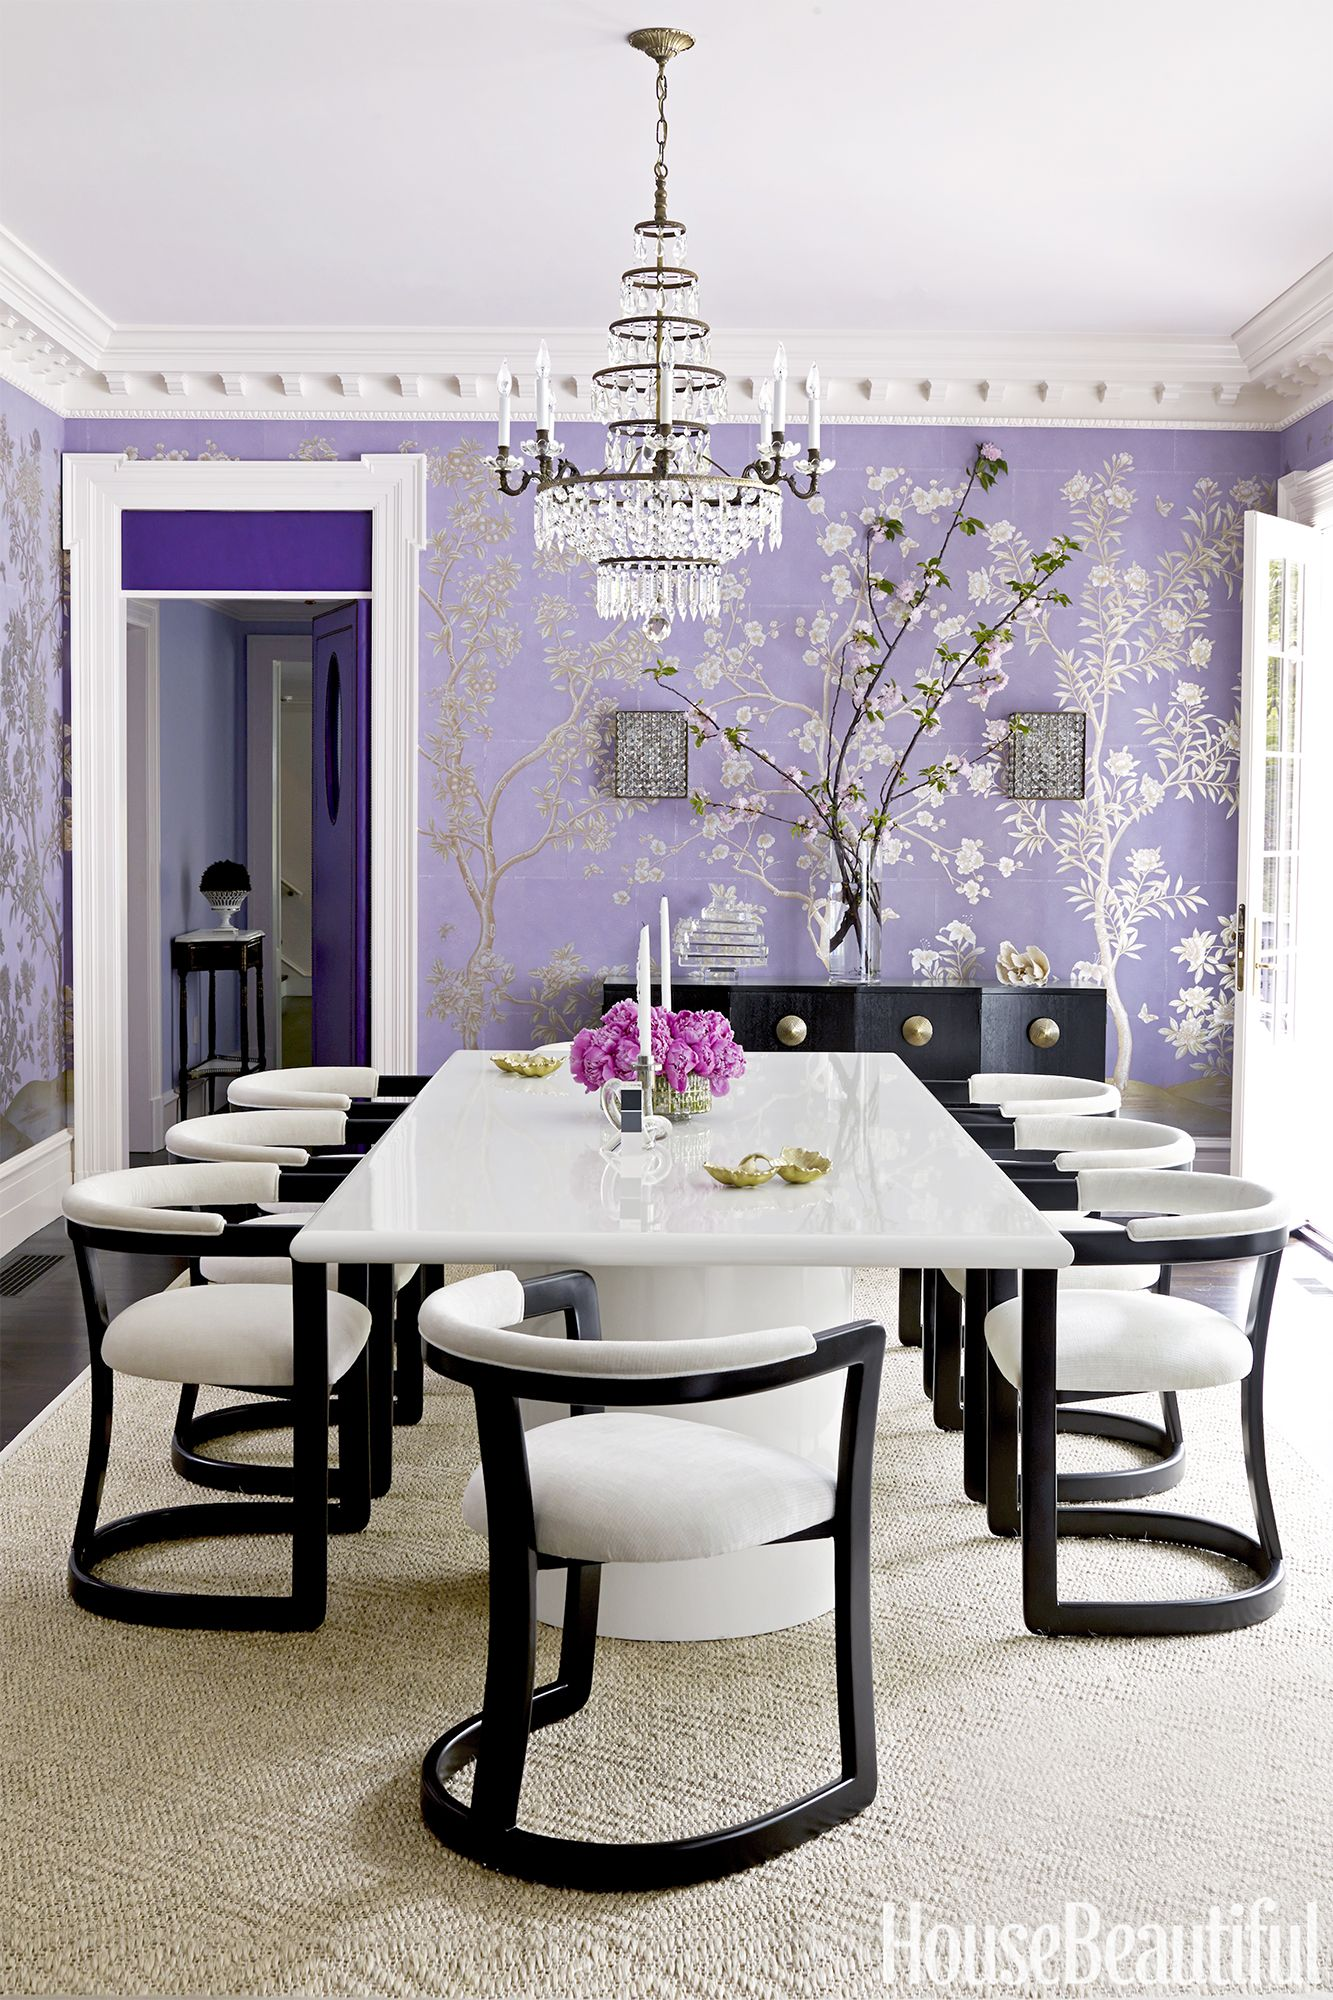 20 Best Purple Rooms and Decor - Lavender, Lilac and Violet ...